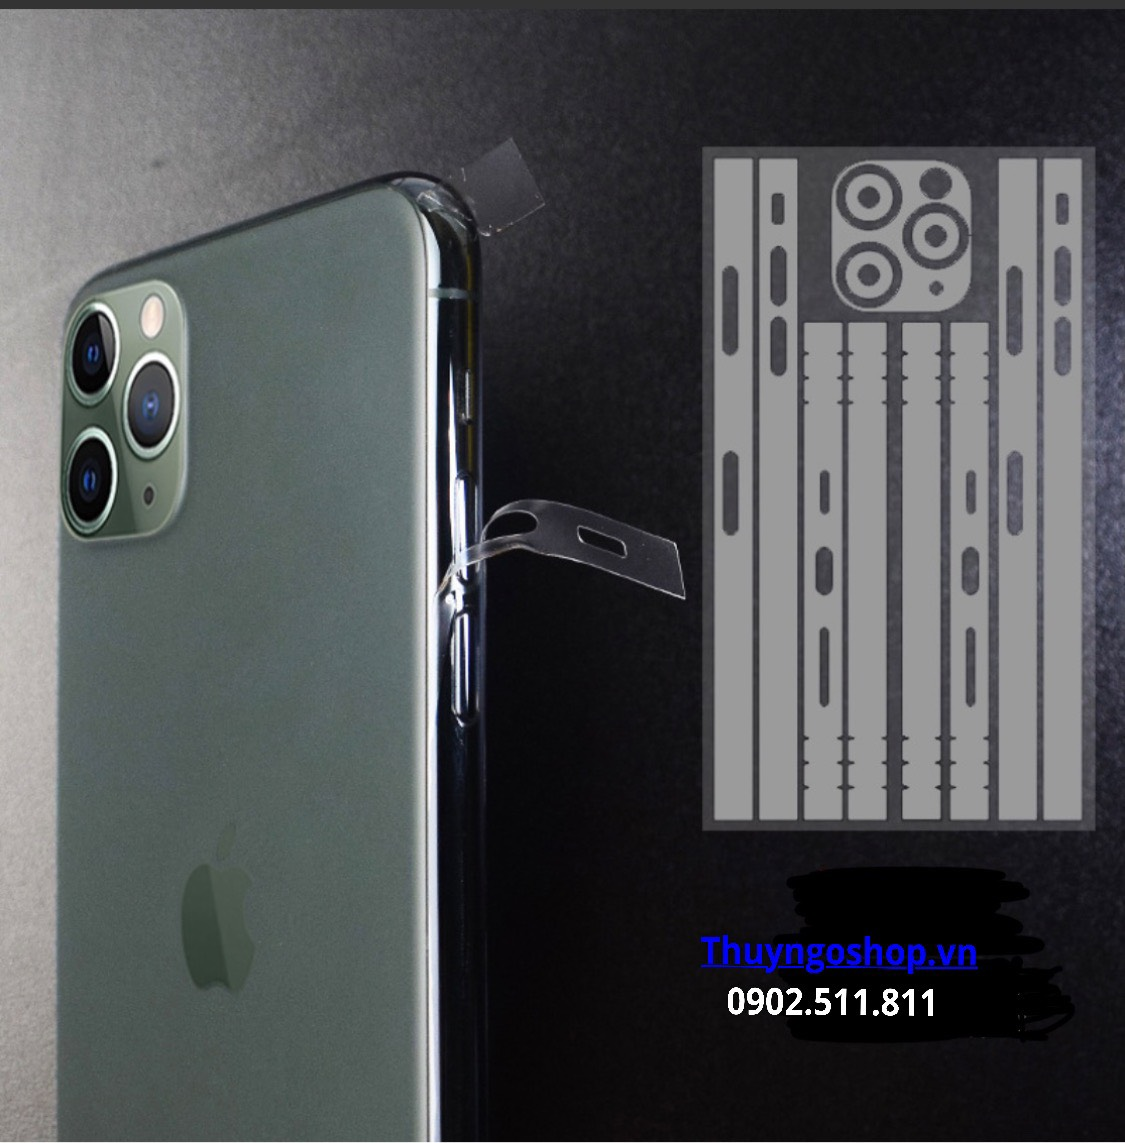 PPF 4 cạnh viền trong suốt / mờ Iphone 11 Pro